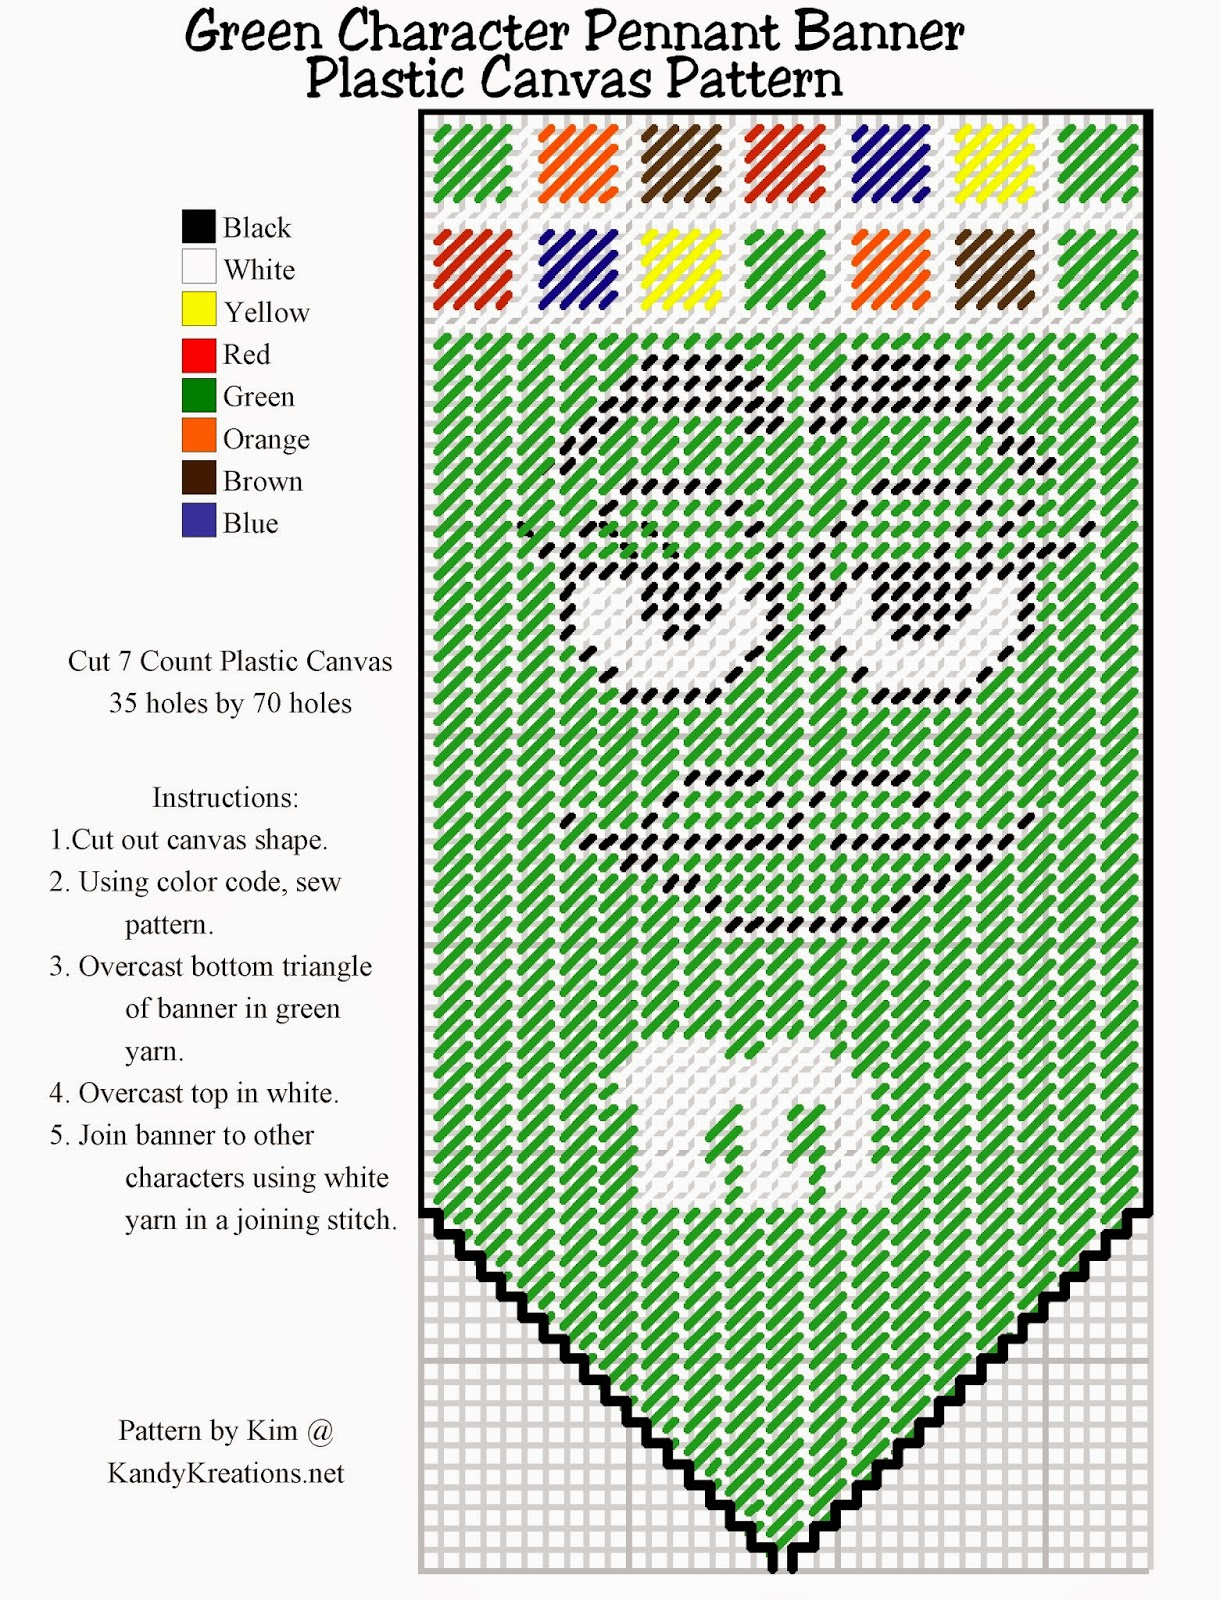 Make your own pennant banner with the green M&M character using this Plastic canvas pattern freebie.  Simply right click and save this pattern to create your own party decoration or kitchen decor.